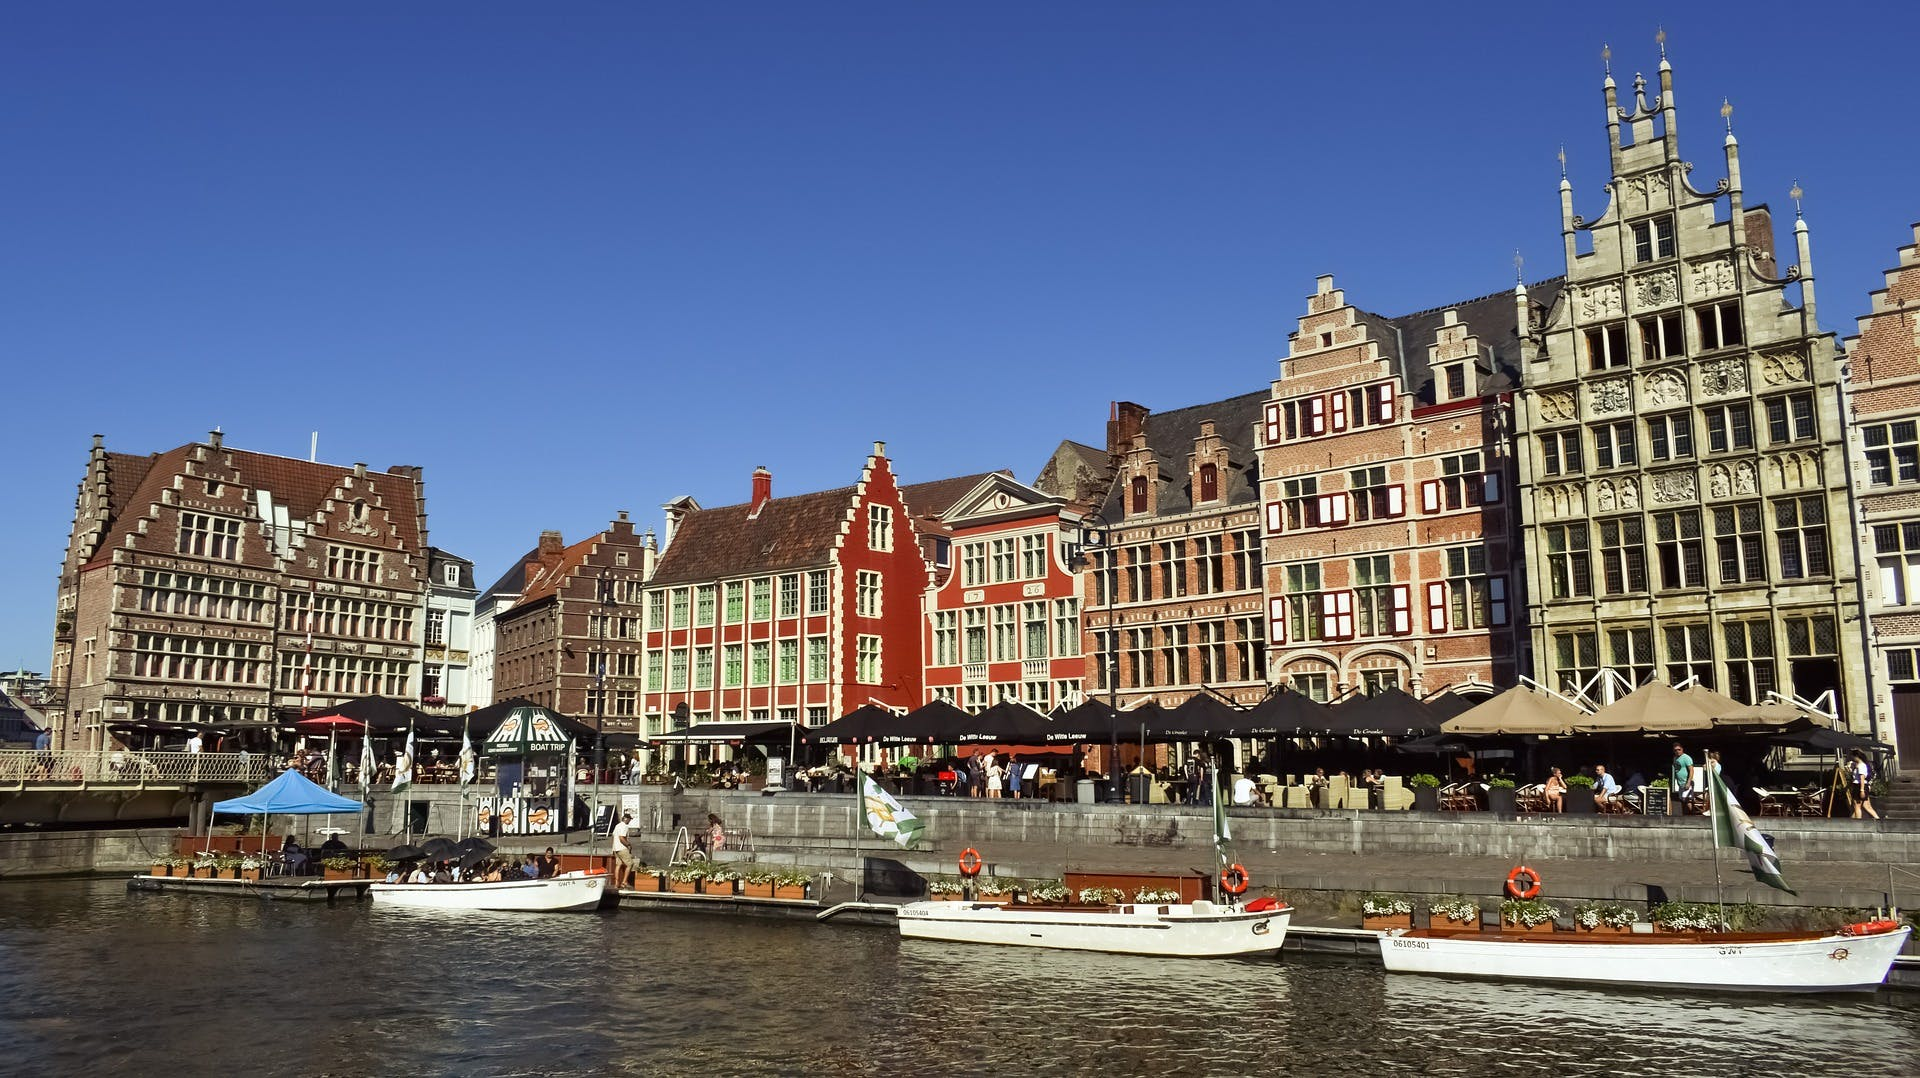 Campercontact country information - Ghent, Belgium